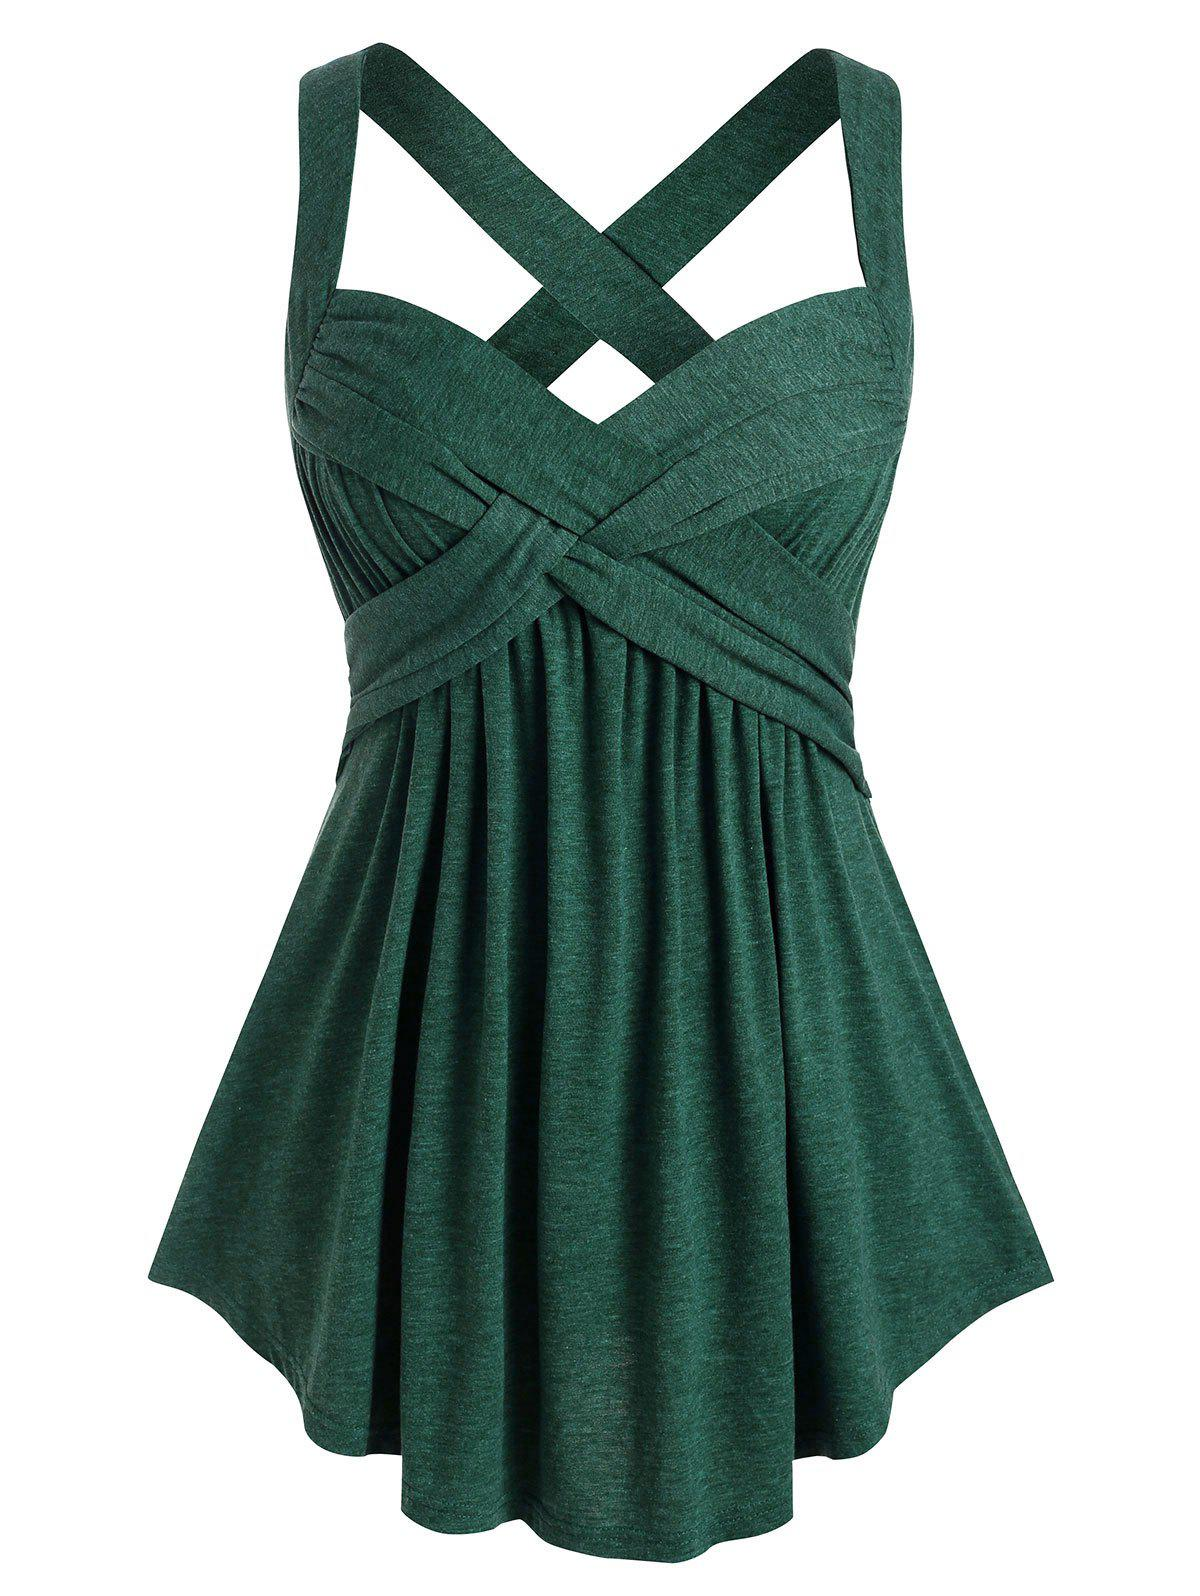 Plus Size Crisscross Tank Top - MEDIUM SEA GREEN 5X